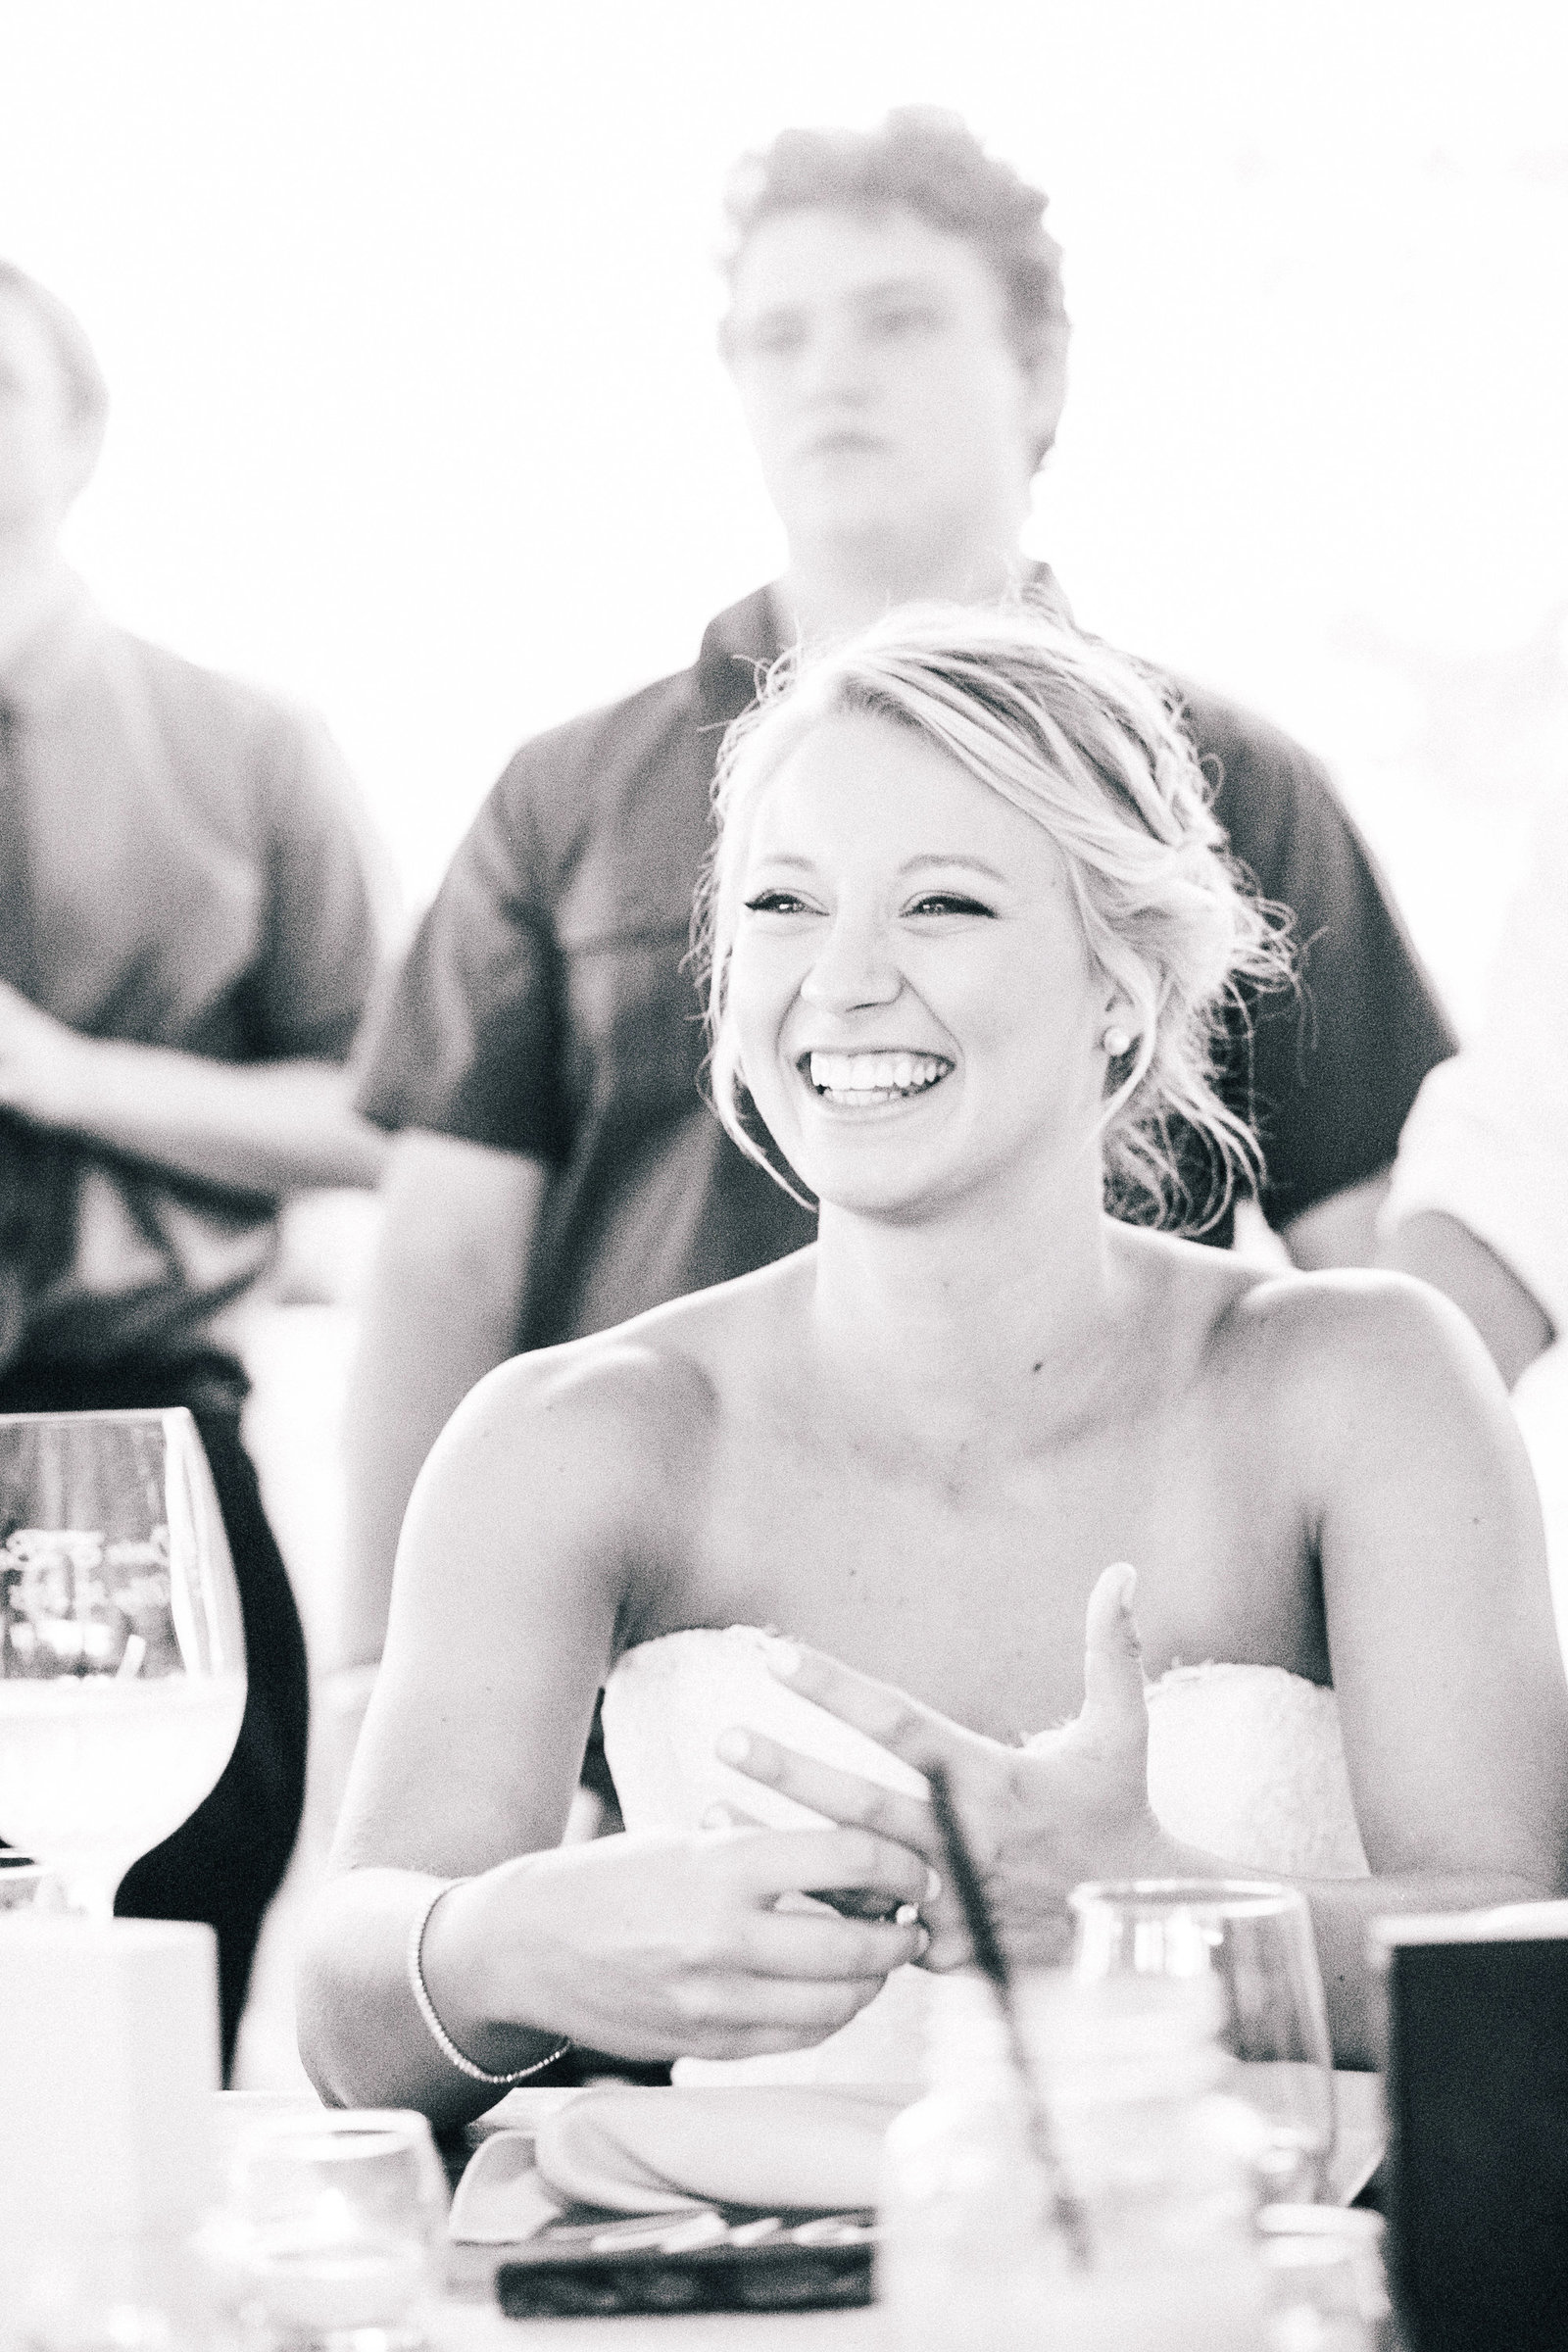 71Devin_Ben_AstridPhotography461Devin_Ben_WeddingIMG_0390